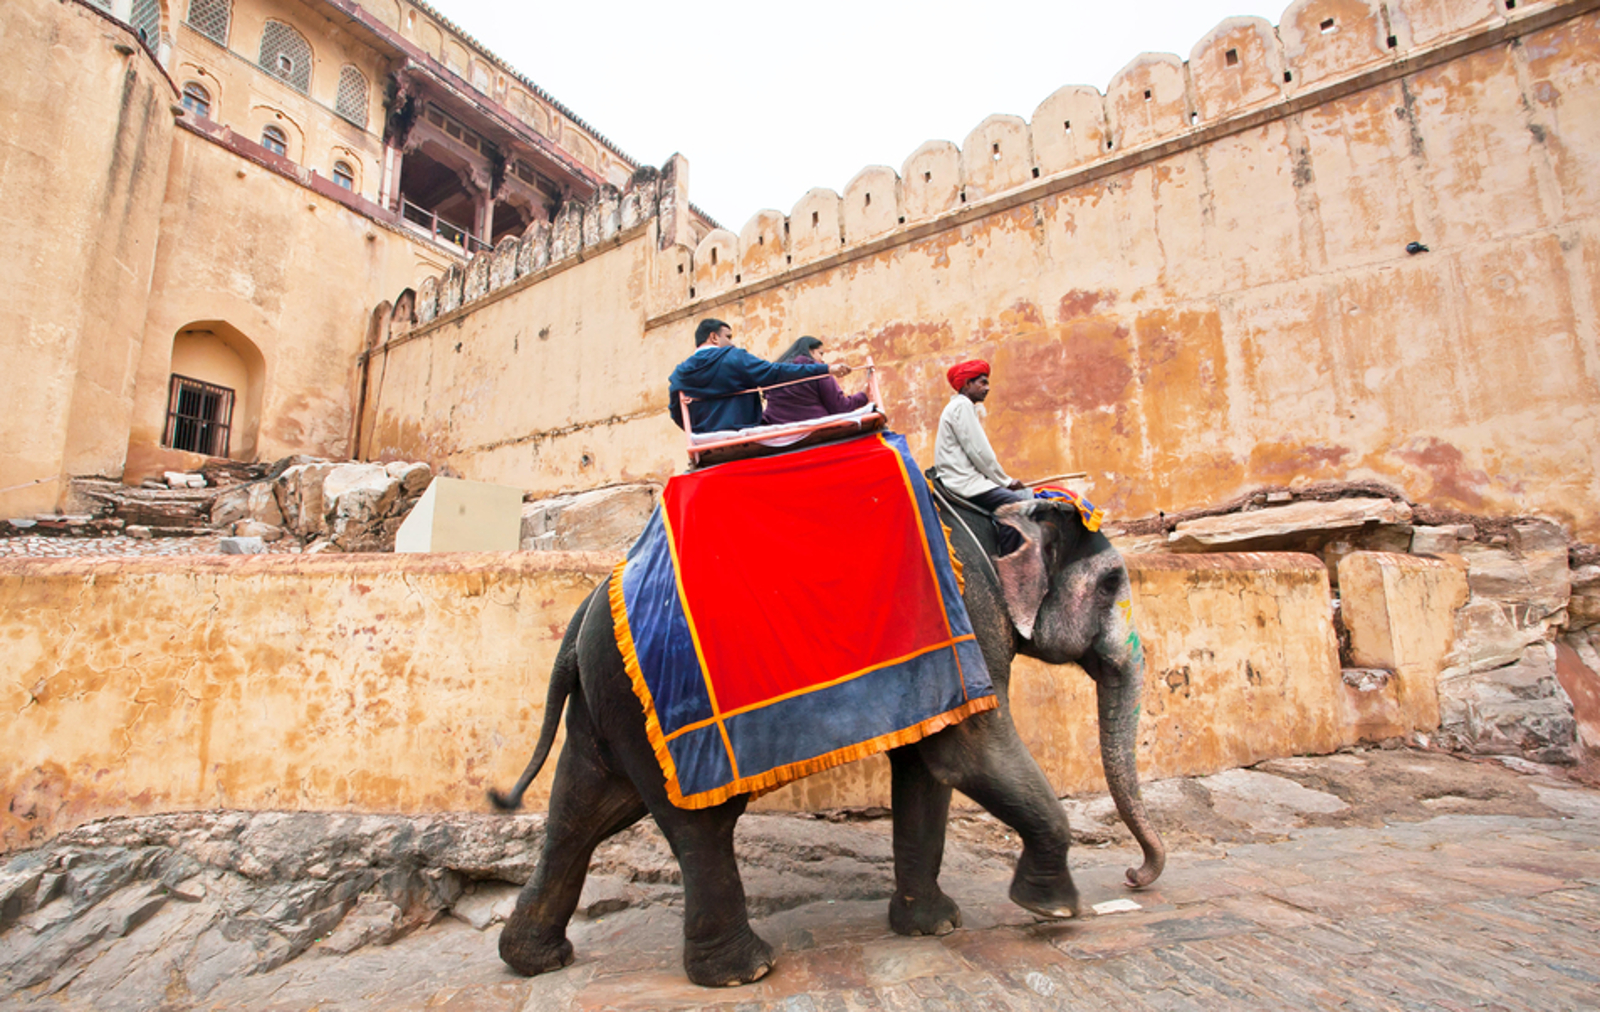 Elephants are Being Abused for Tourist Rides in India – Here's How You Can Help Stop the Suffering